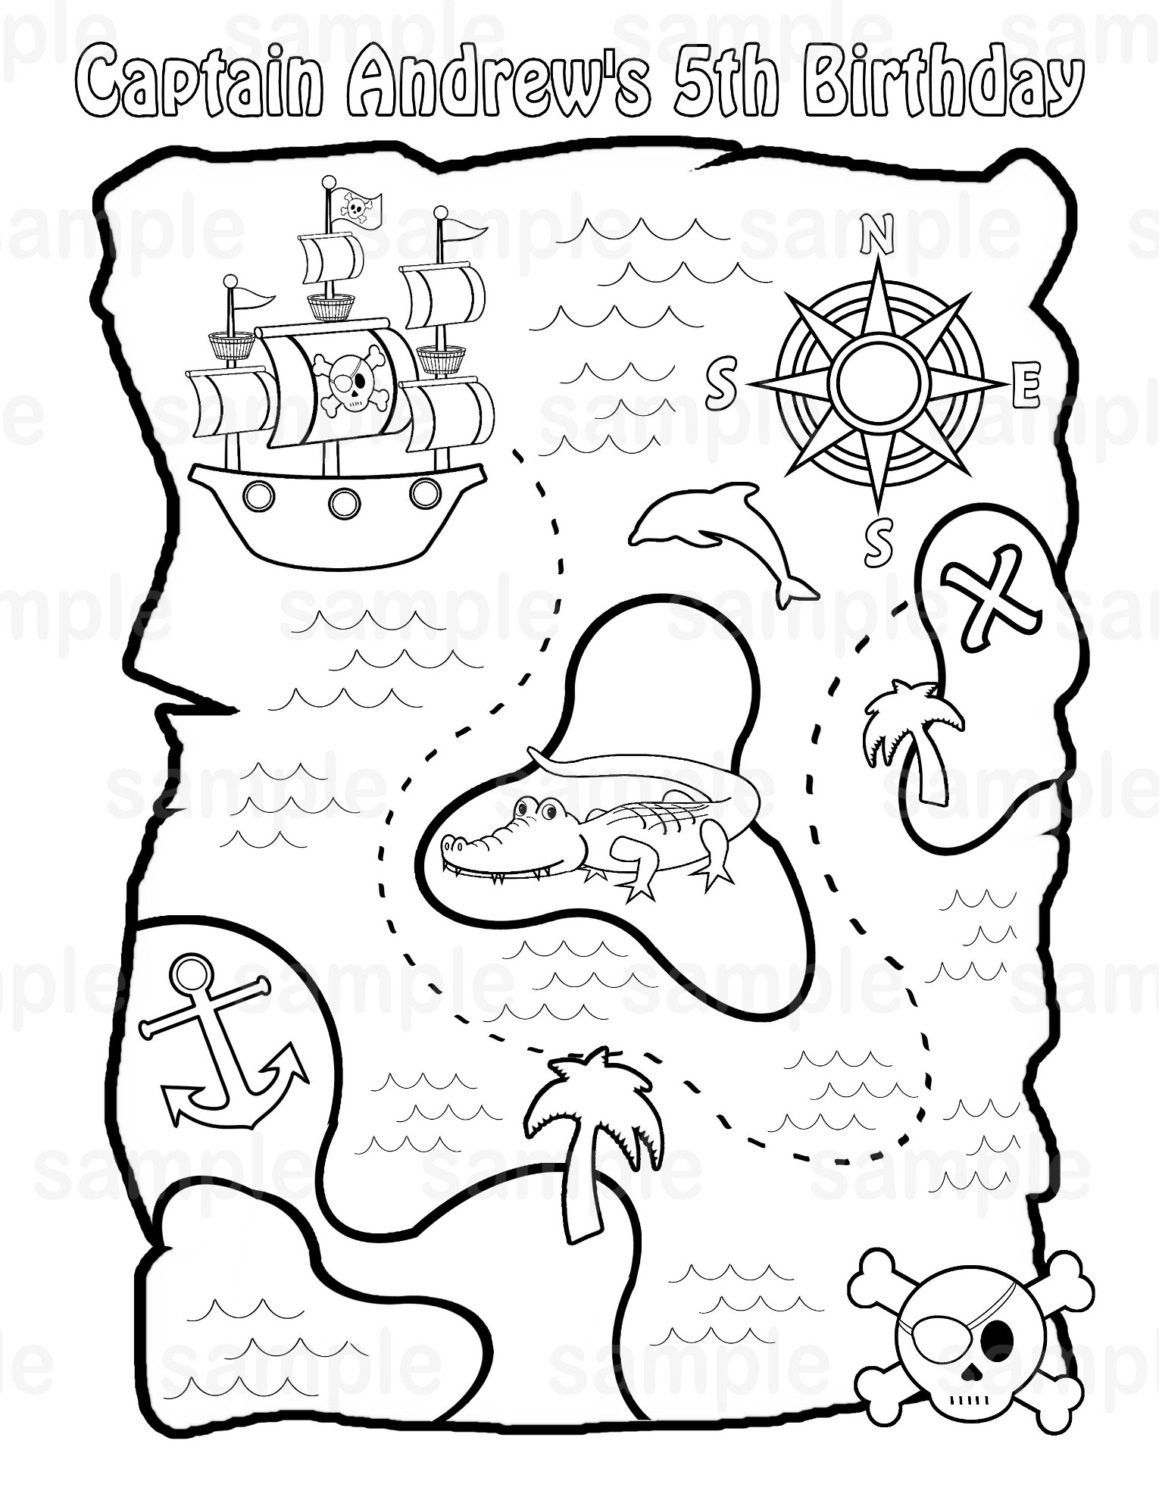 Printable Pirate Treasure Map For Kids Adult Coloring